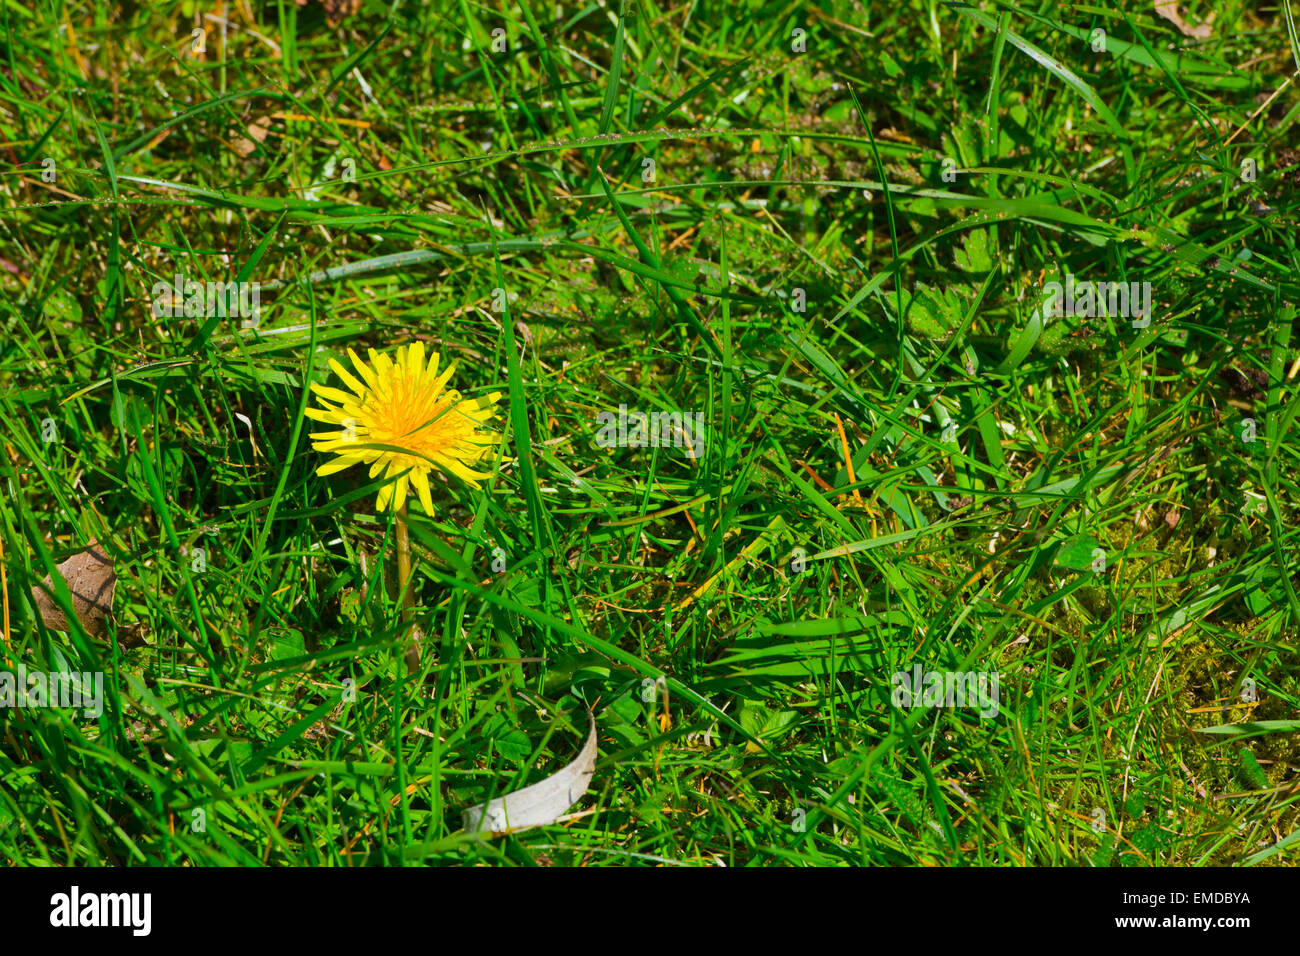 yellow dandelion flower in lawn - Stock Image